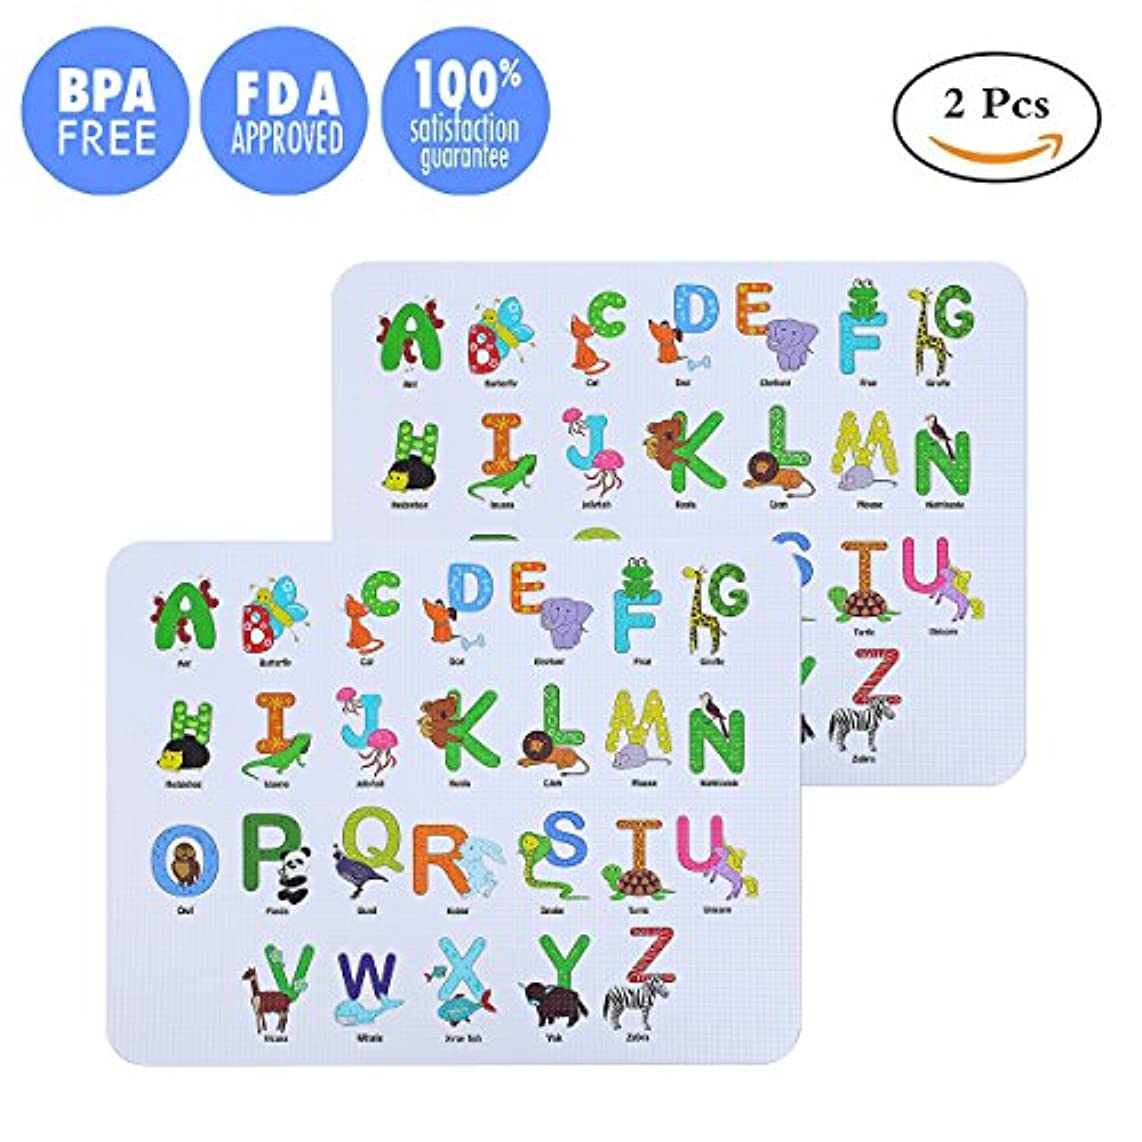 Medical Grade Silicone Babies Alphabet Educational Placemats Table Mats Reusable Collapsible Table Mats for Dining Table No-slip Washable Portable Foldable Placemats (set of 2)